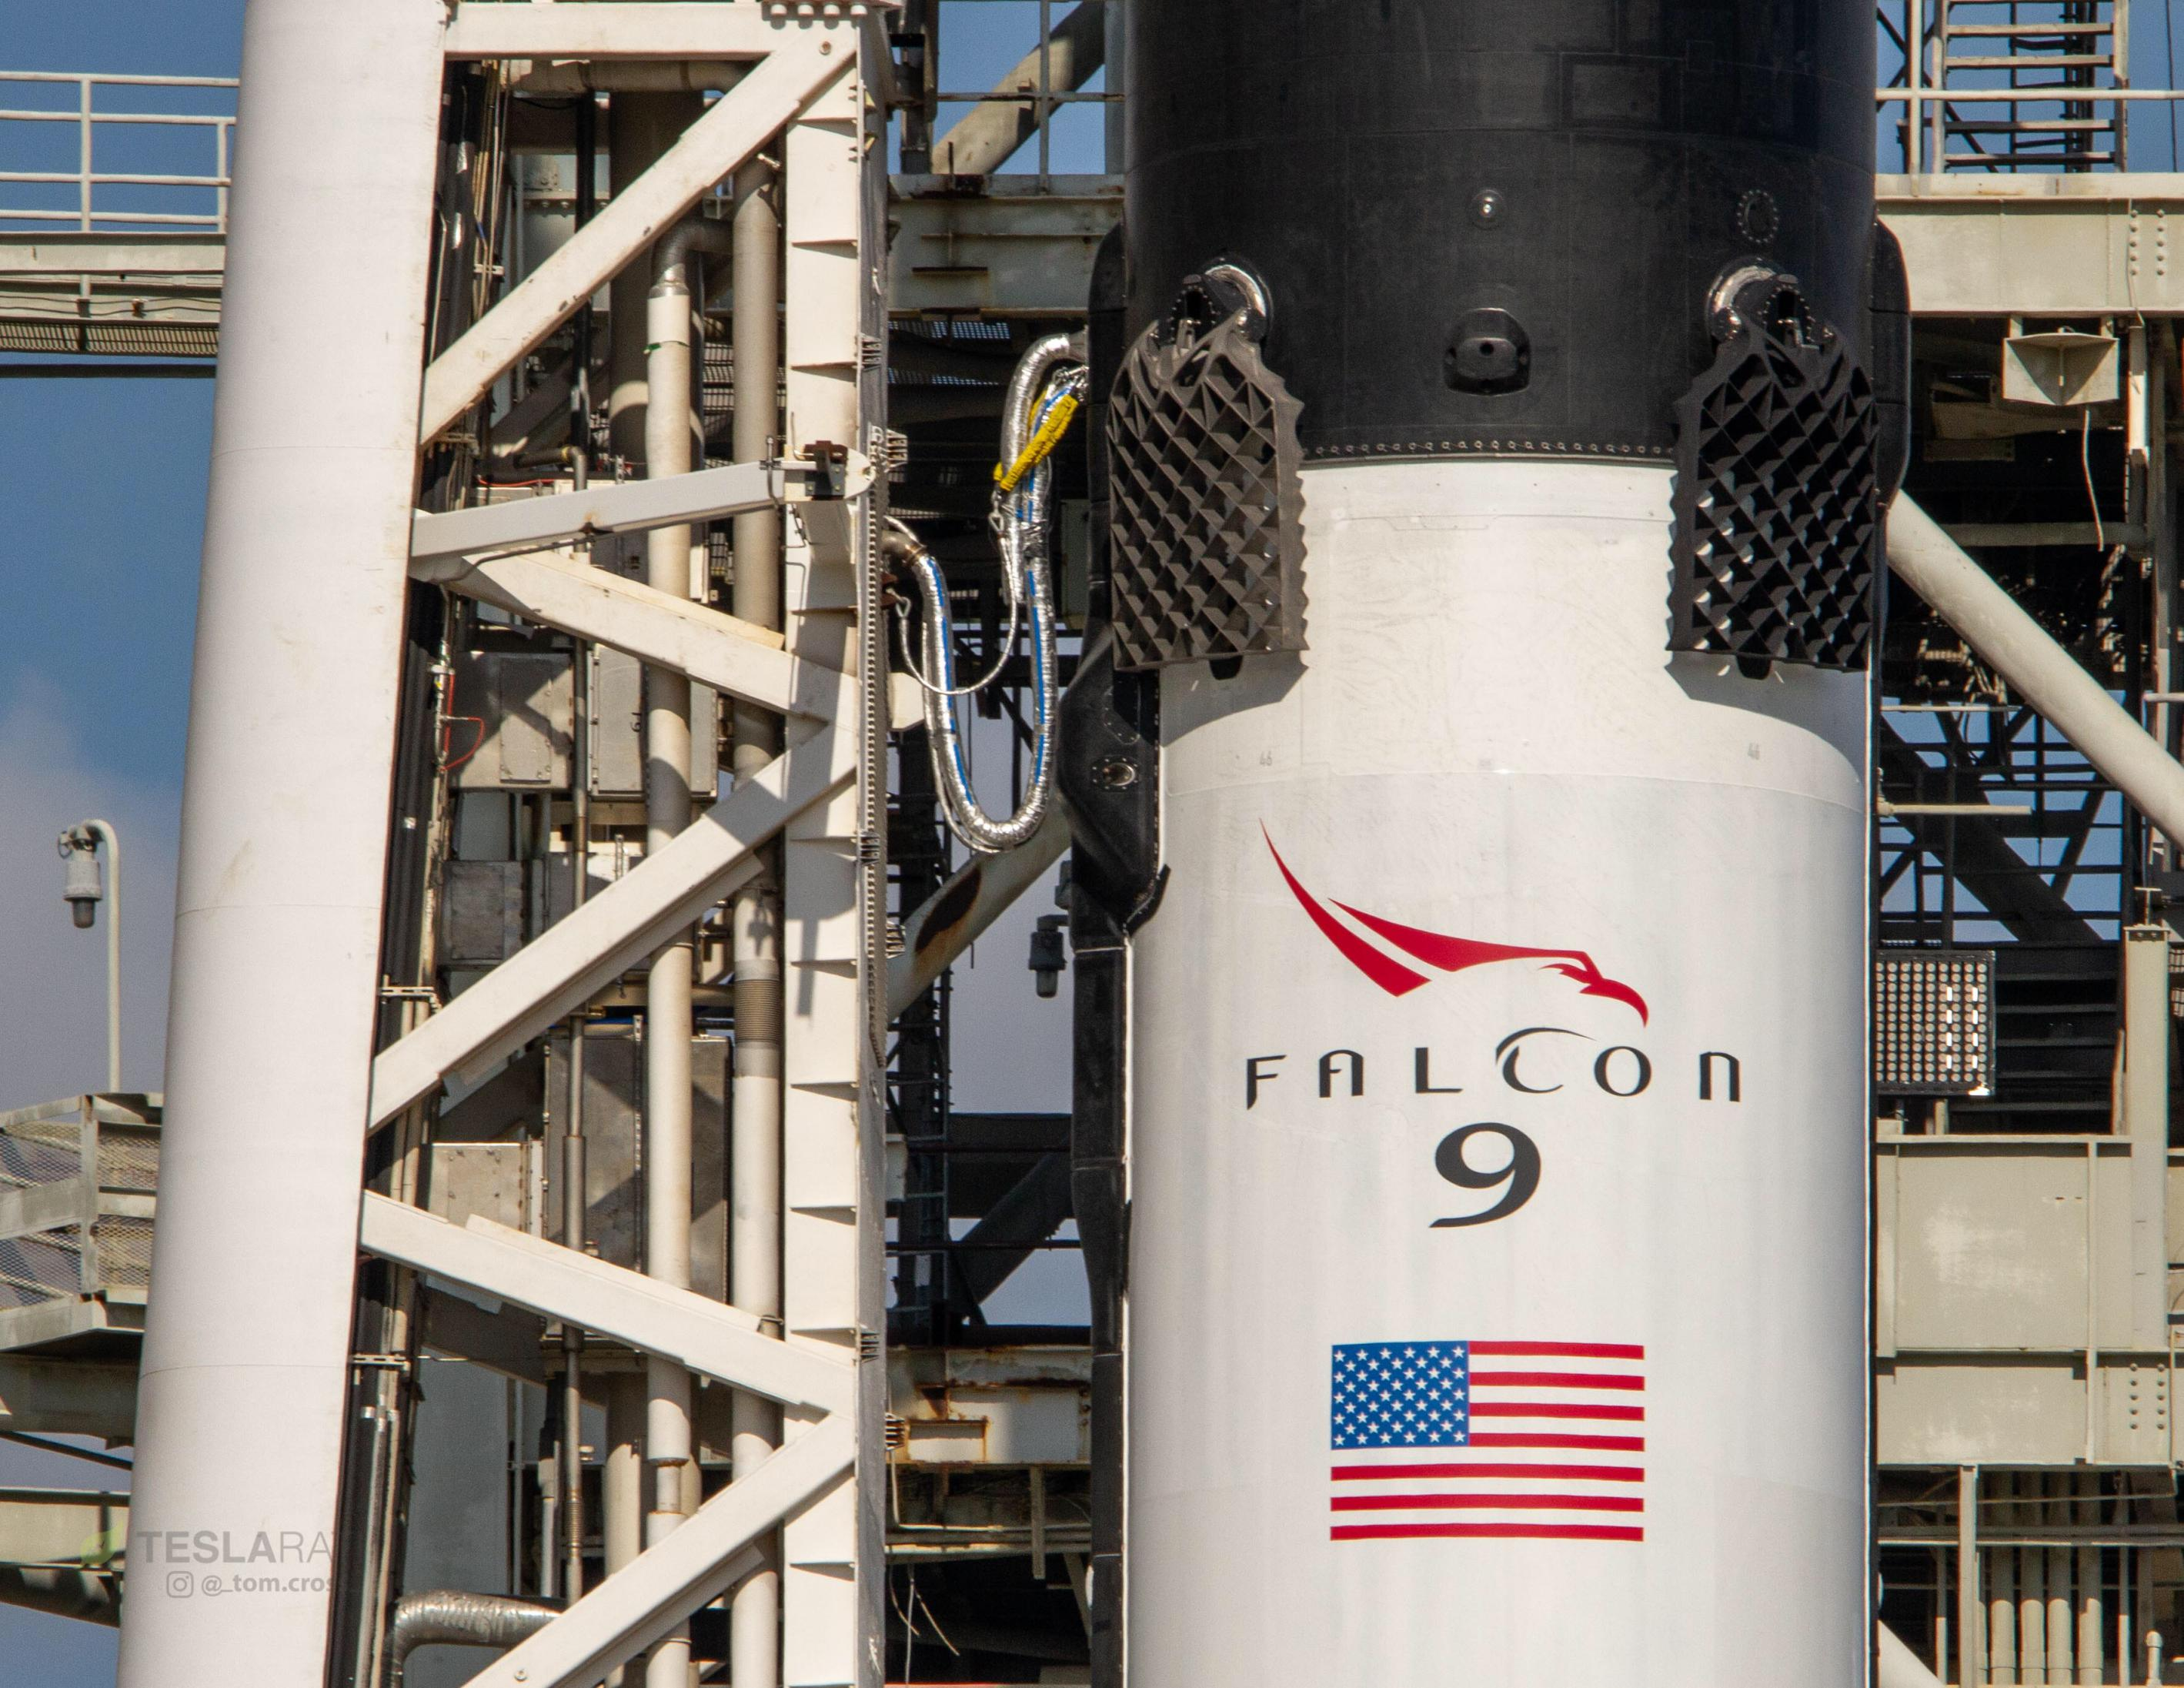 This summer's SpaceX manifest, brought to you by Falcon 9 Block 5. The highly reusable Falcon 9 upgrade could enable SpaceX to launch as often as once per week in the near future.